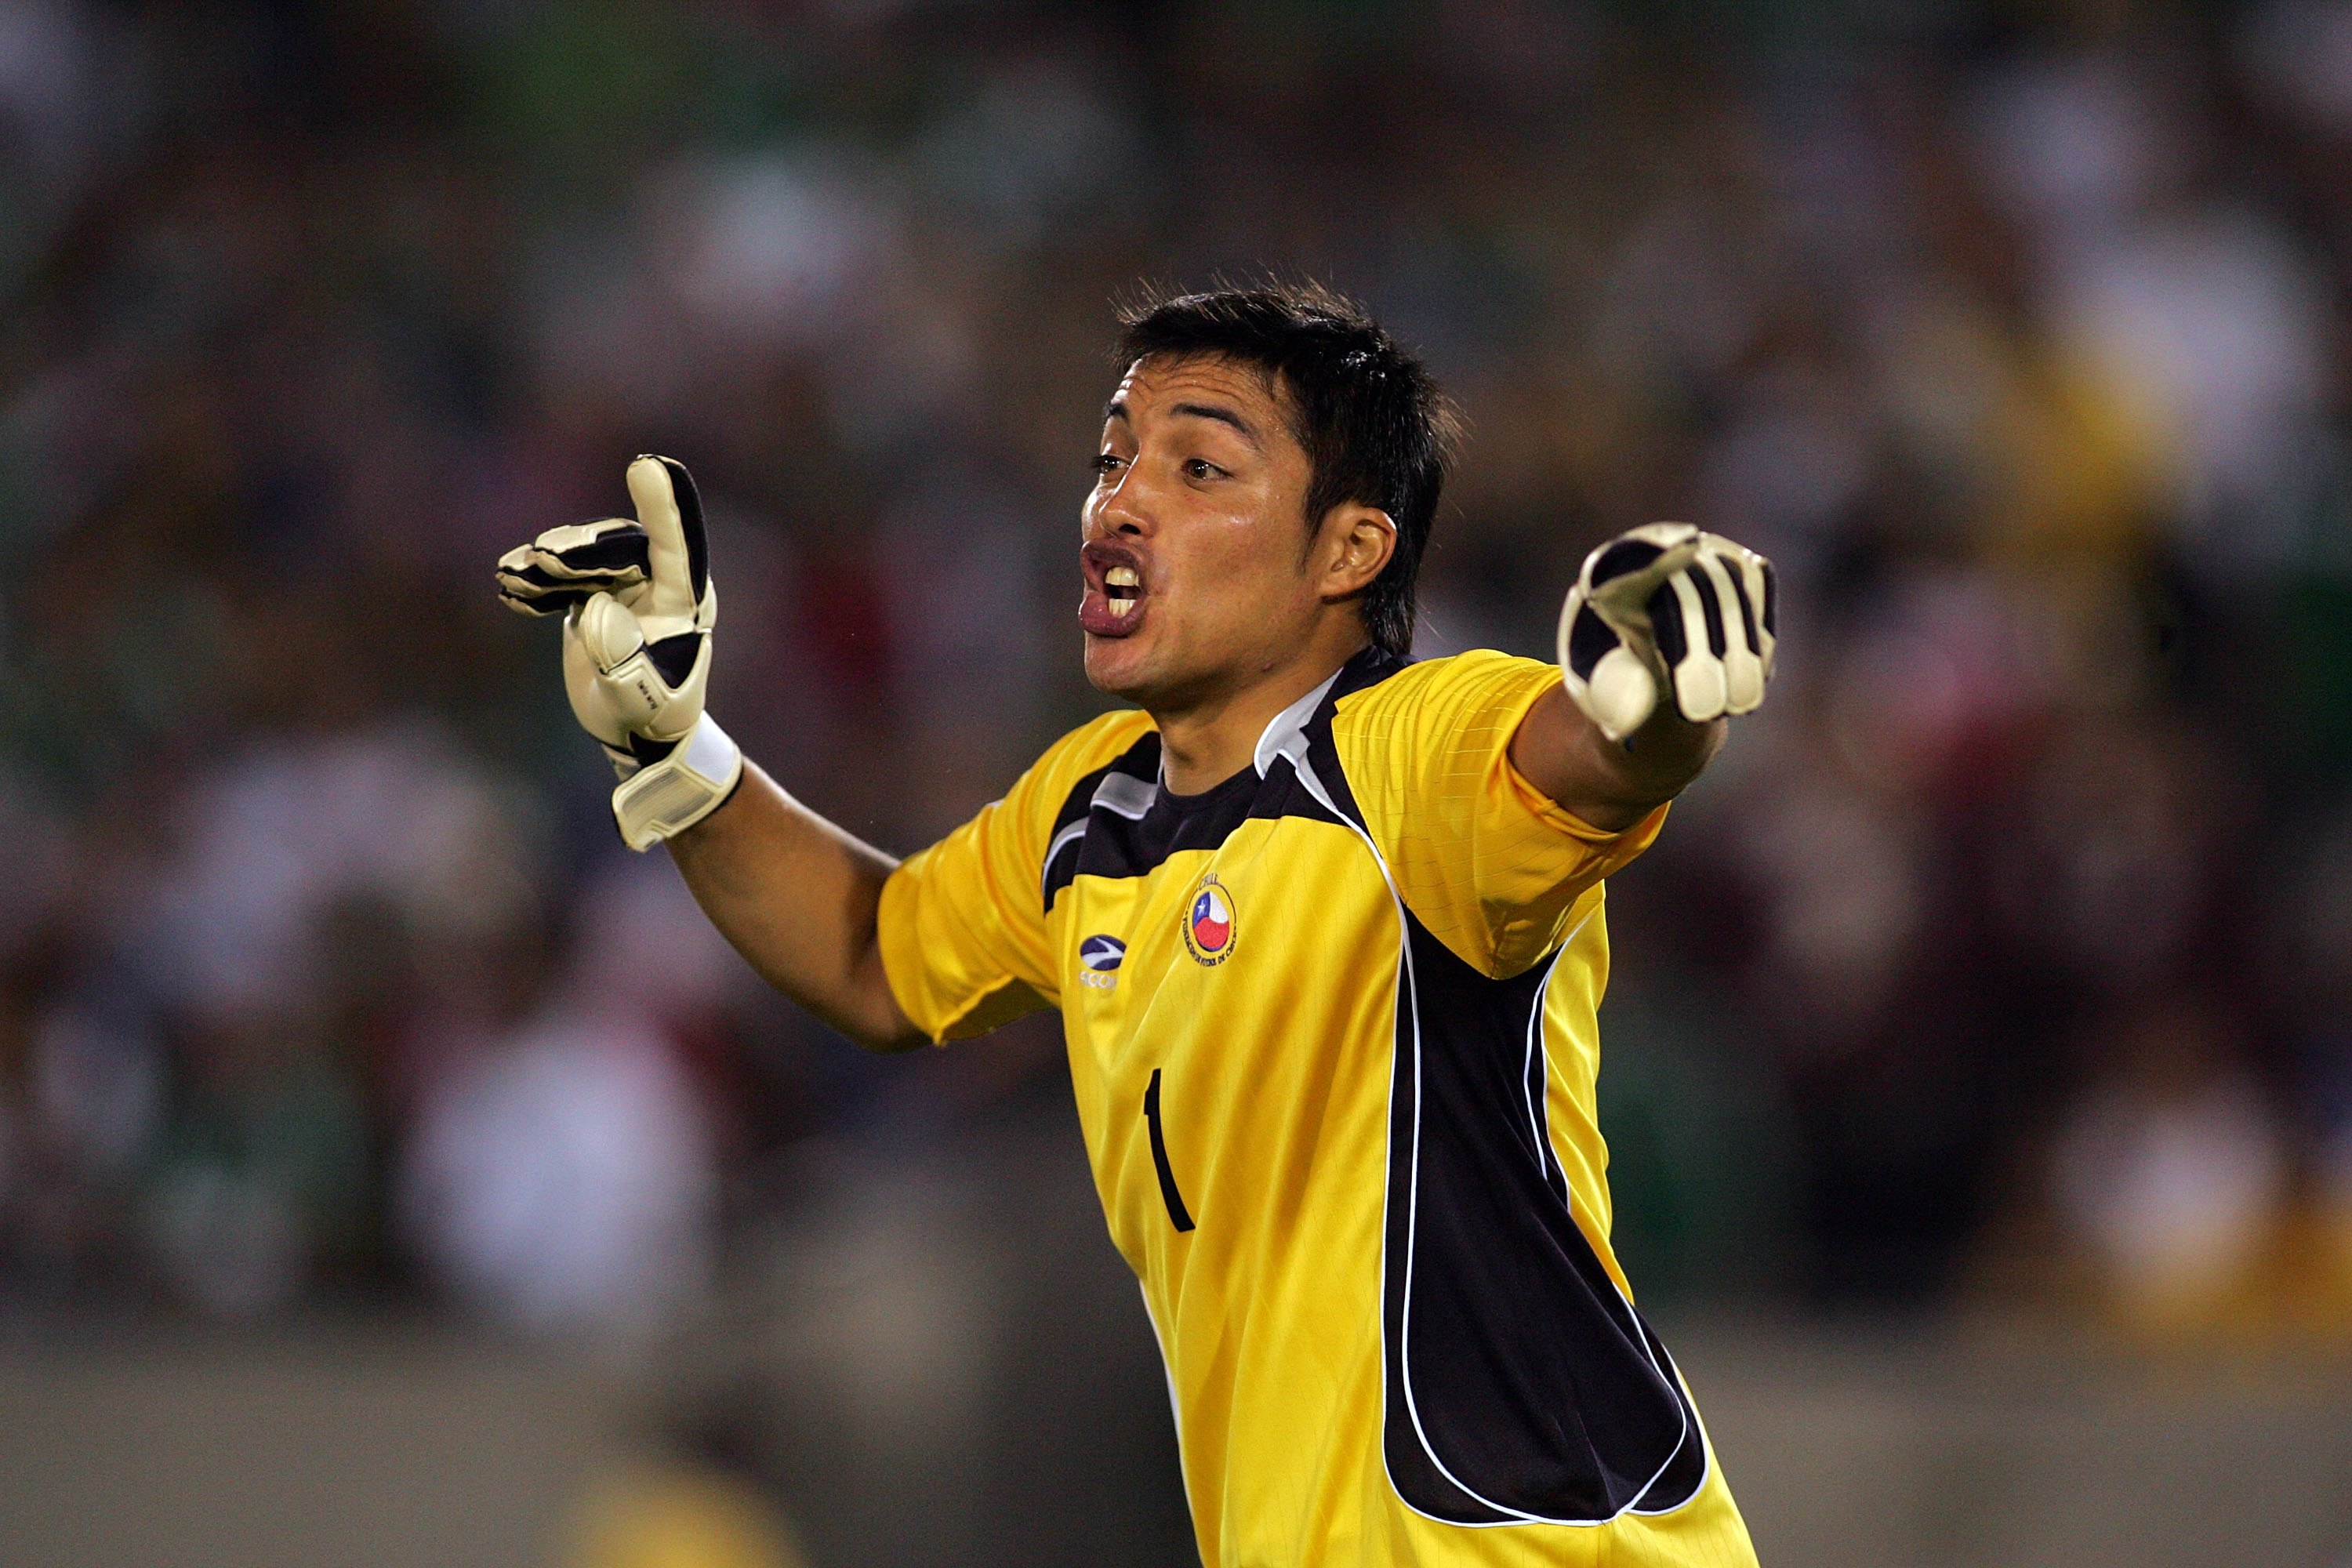 LOS ANGELES, CA - SEPTEMBER 24:  Goalkeeper Miguel Pinto #1 of Chile positions his defense prior to a corner kick by Mexico during their International Friendly match at the Los Angeles Memorial Coliseum on September 24, 2008 in Los Angeles, California. Ch